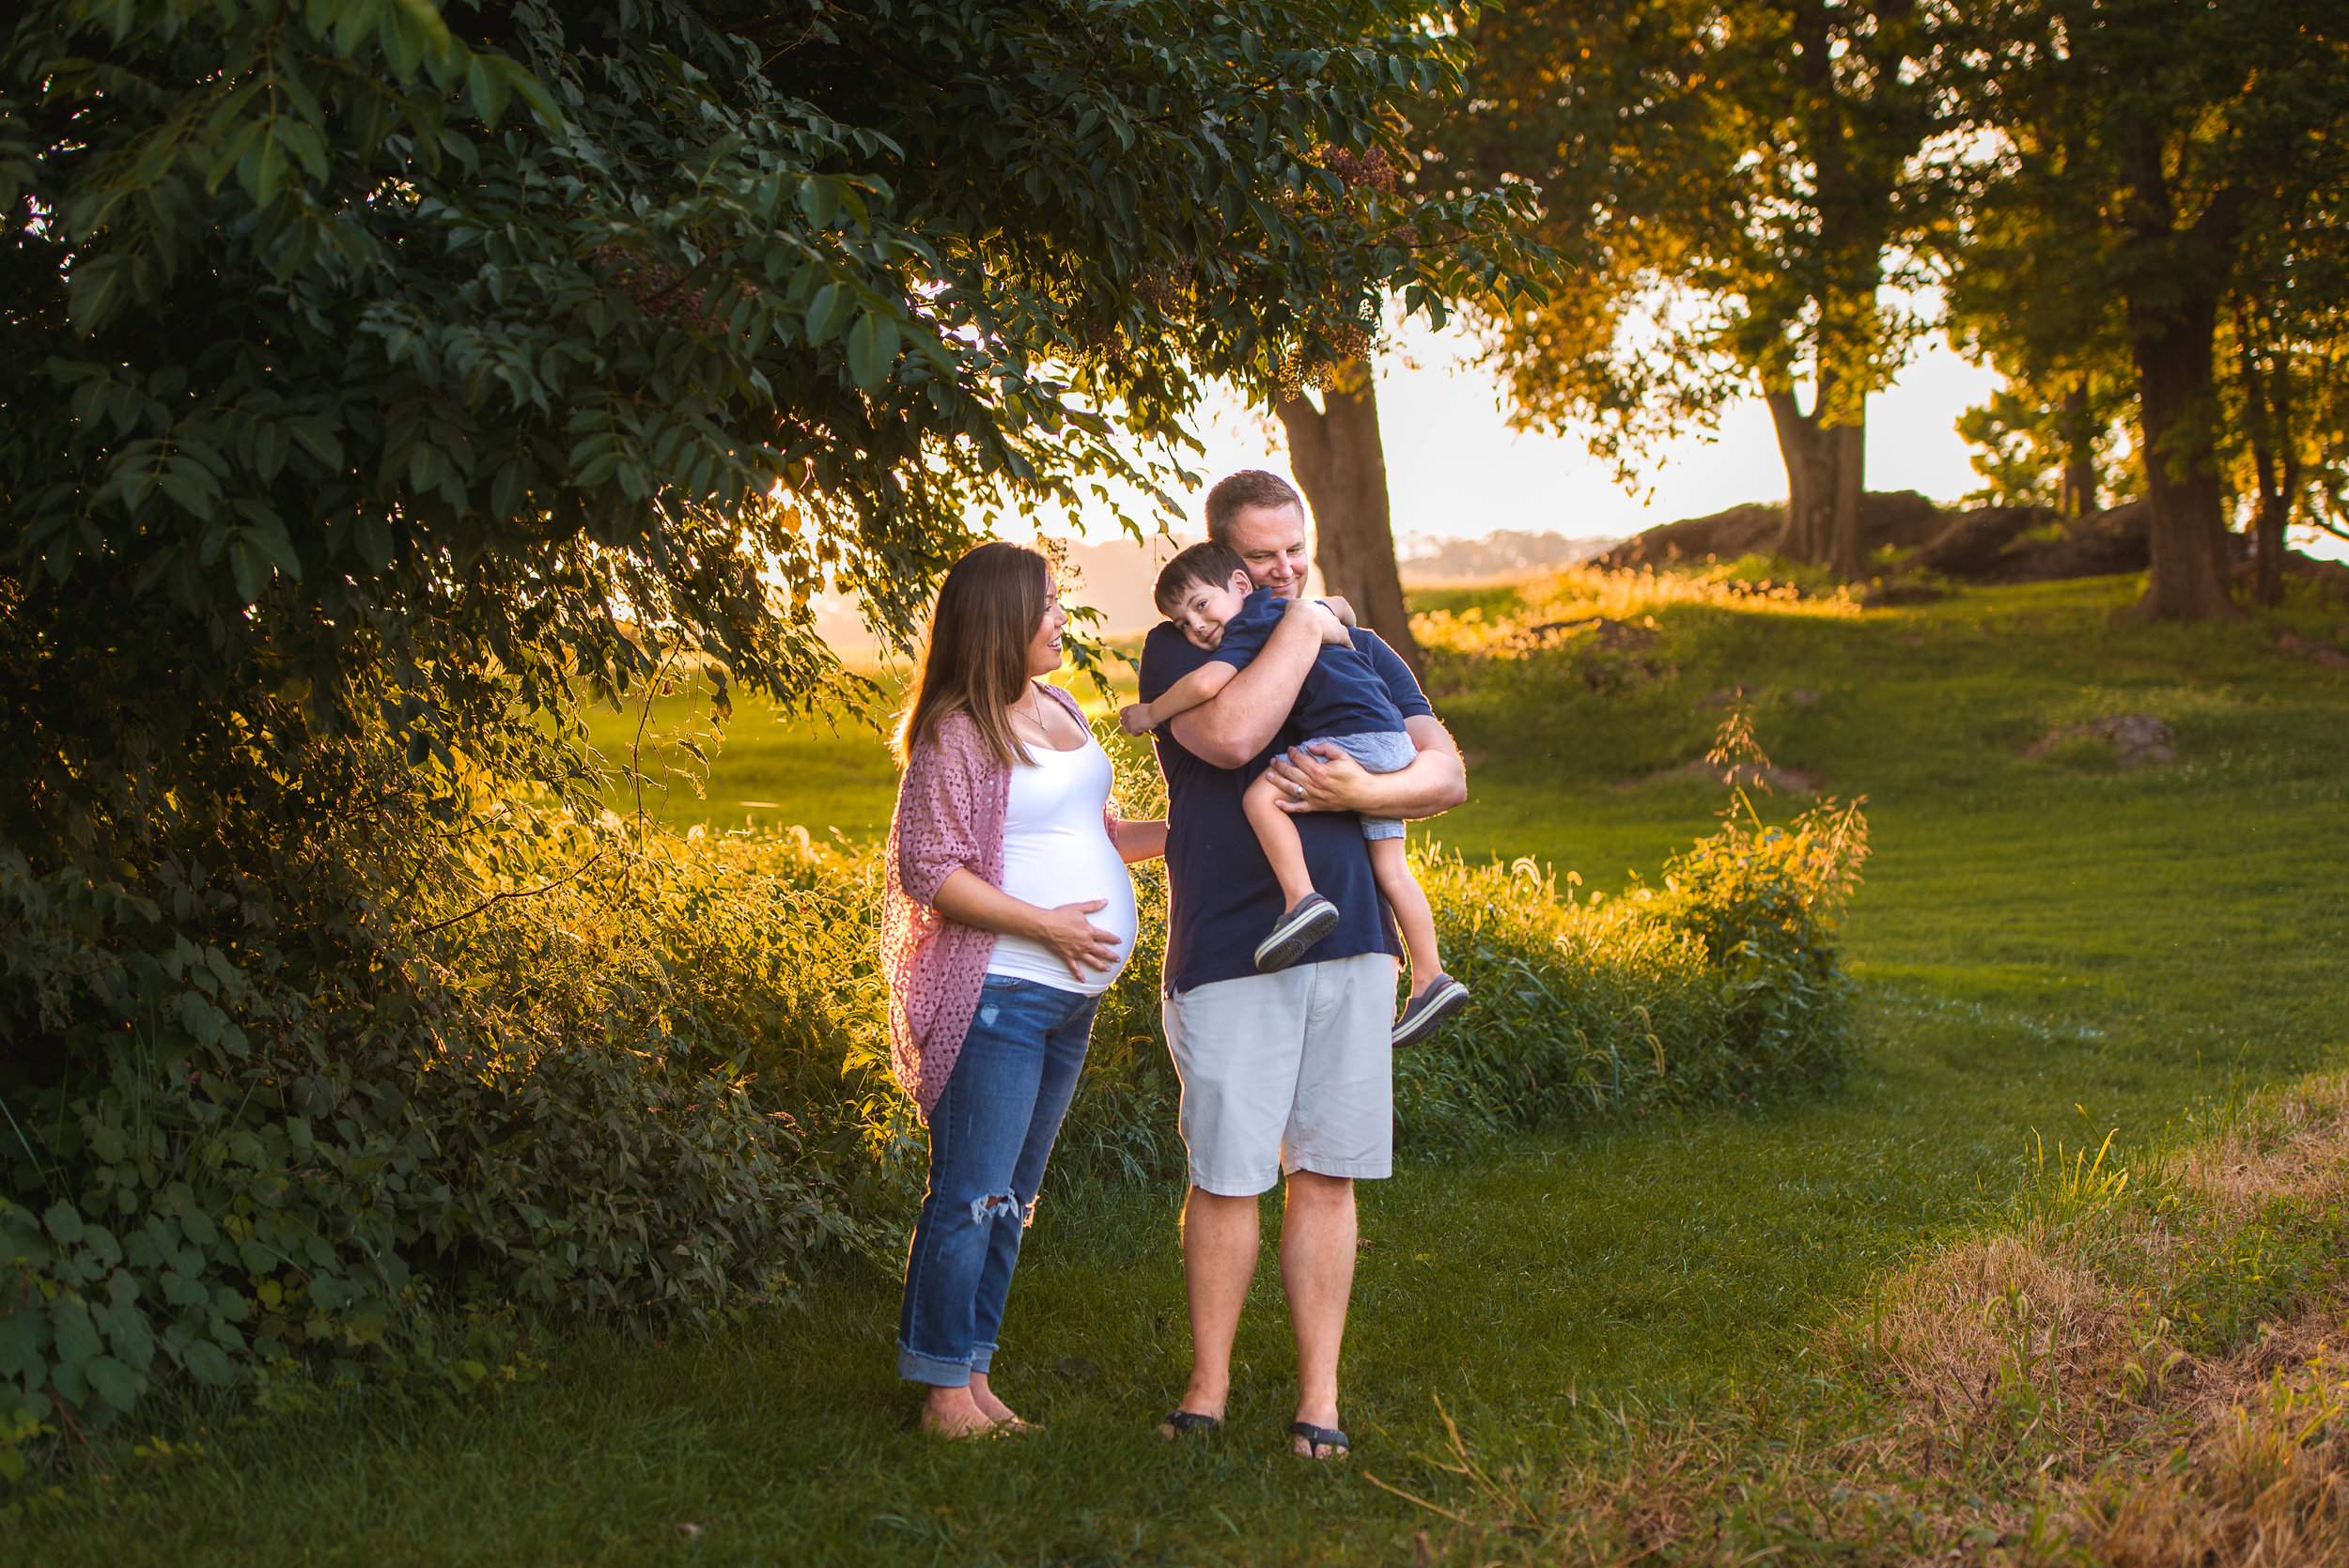 Want to know more about newborn and maternity sessions with Kristin? -